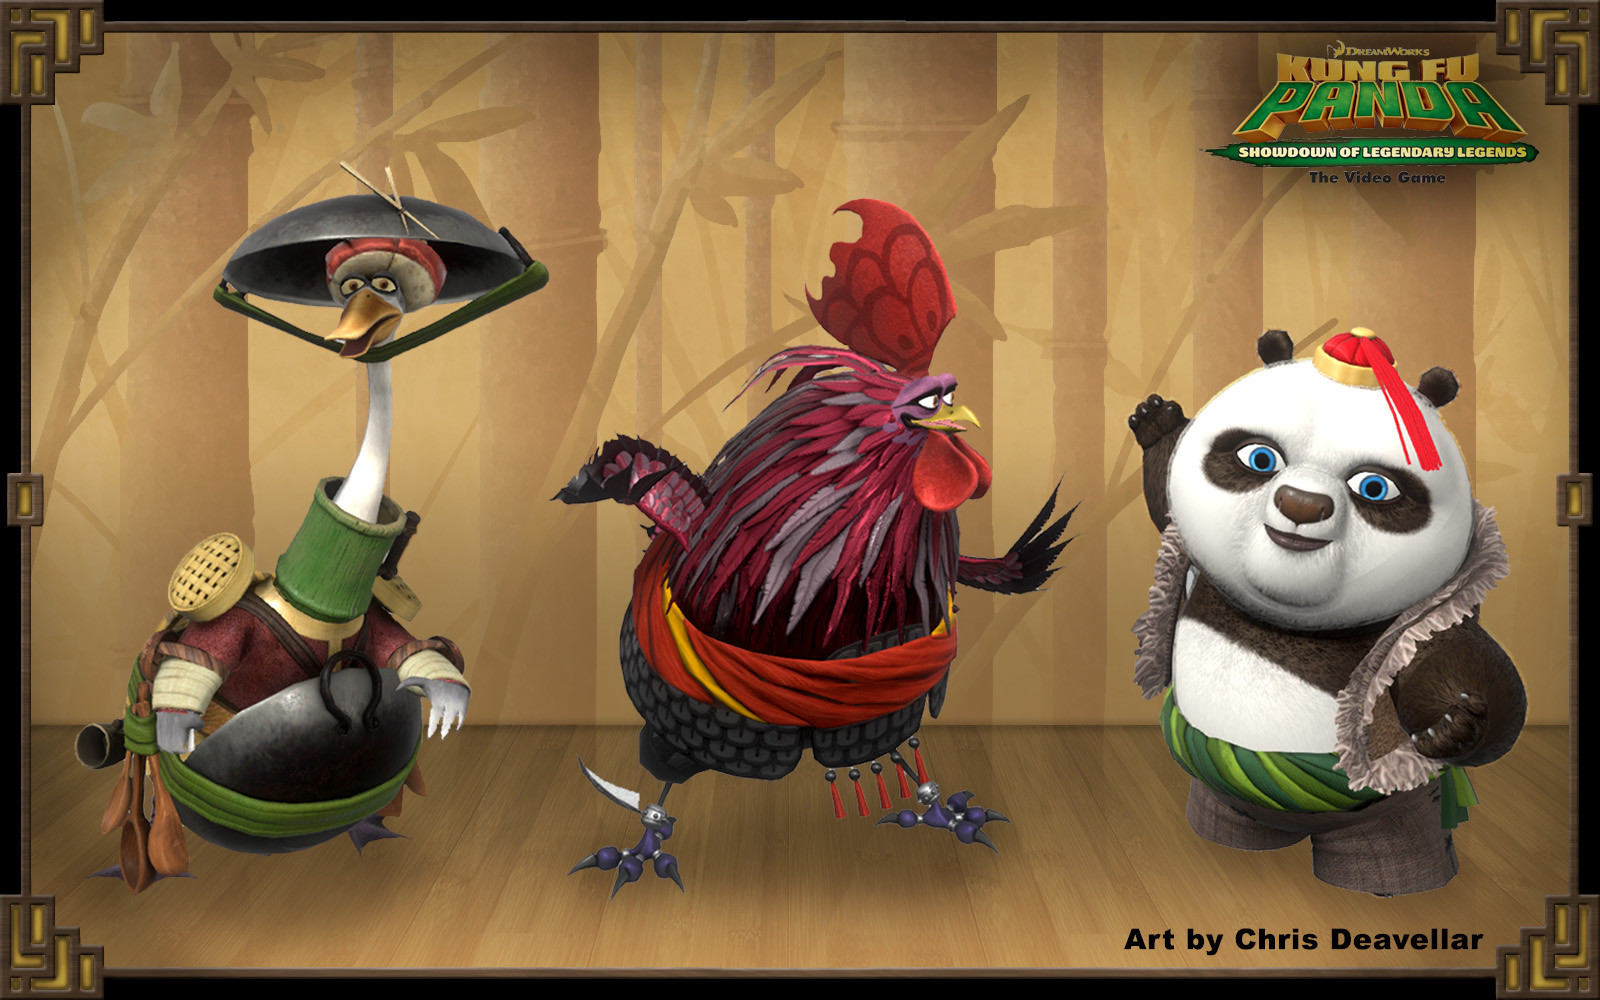 Armored Mr. Ping, Master Chicken, and Bao